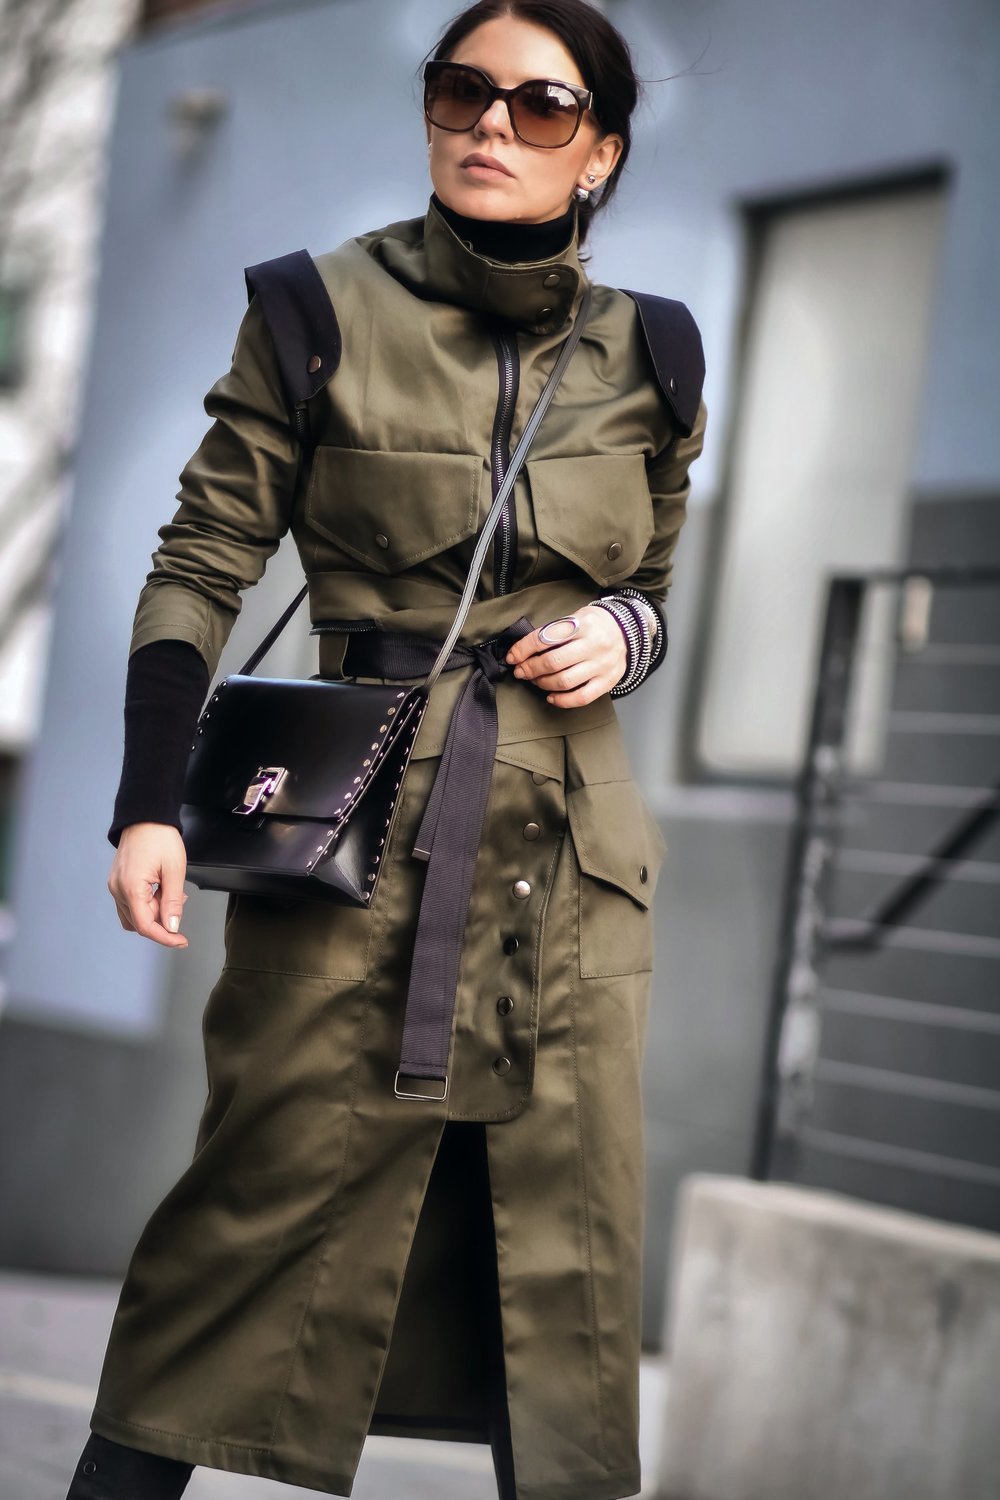 Isabel-Alexander-Clothia-closed-utility-trenchcoat-street-look